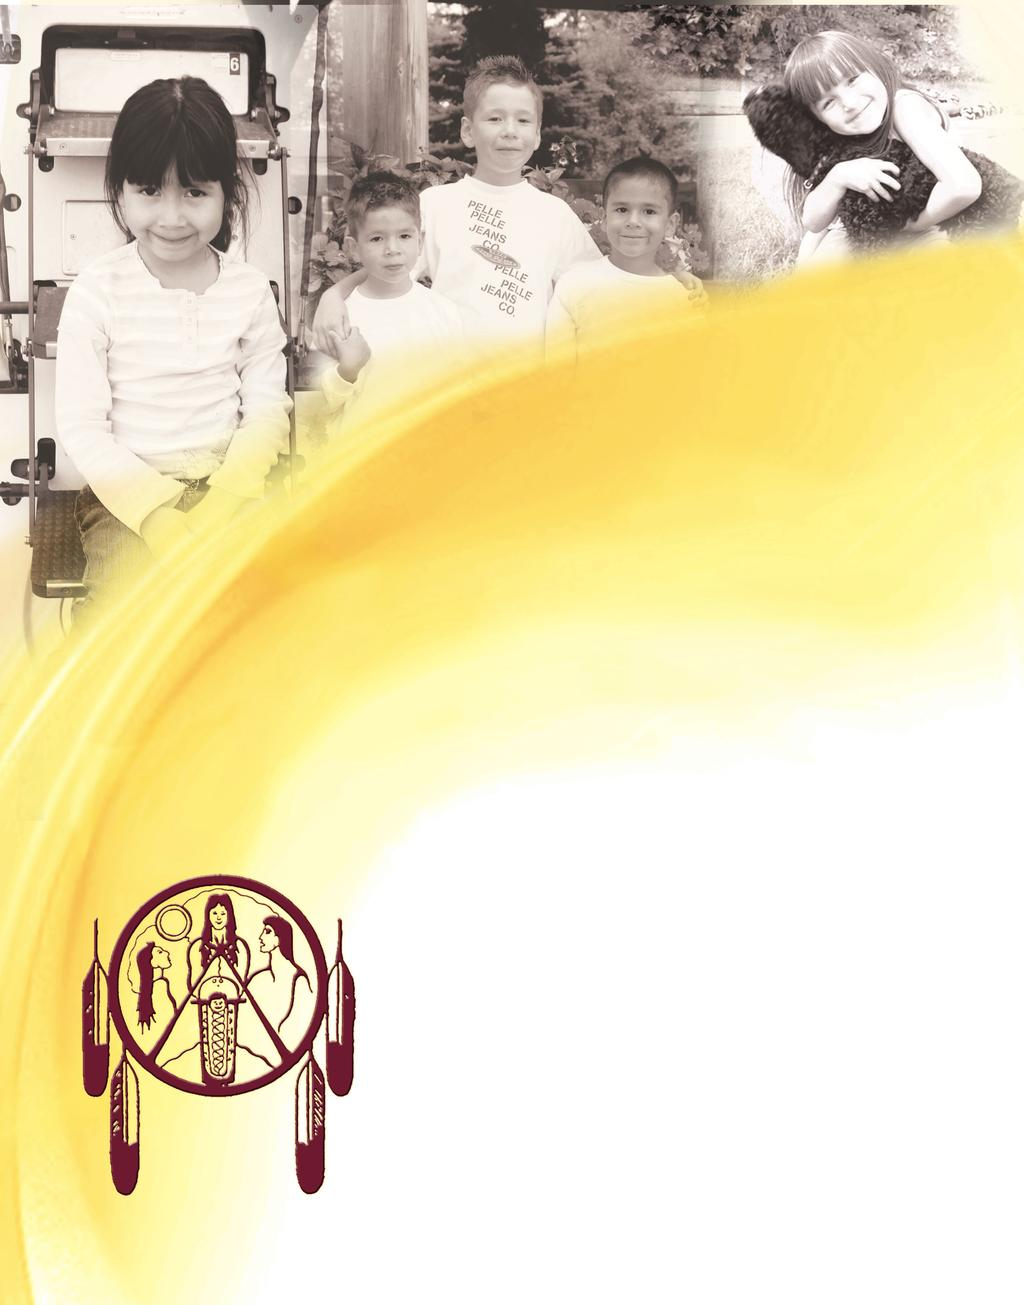 Tikinagan Child and Family Services 2007-2008 Annual Report The Answers Lie Within the Communities